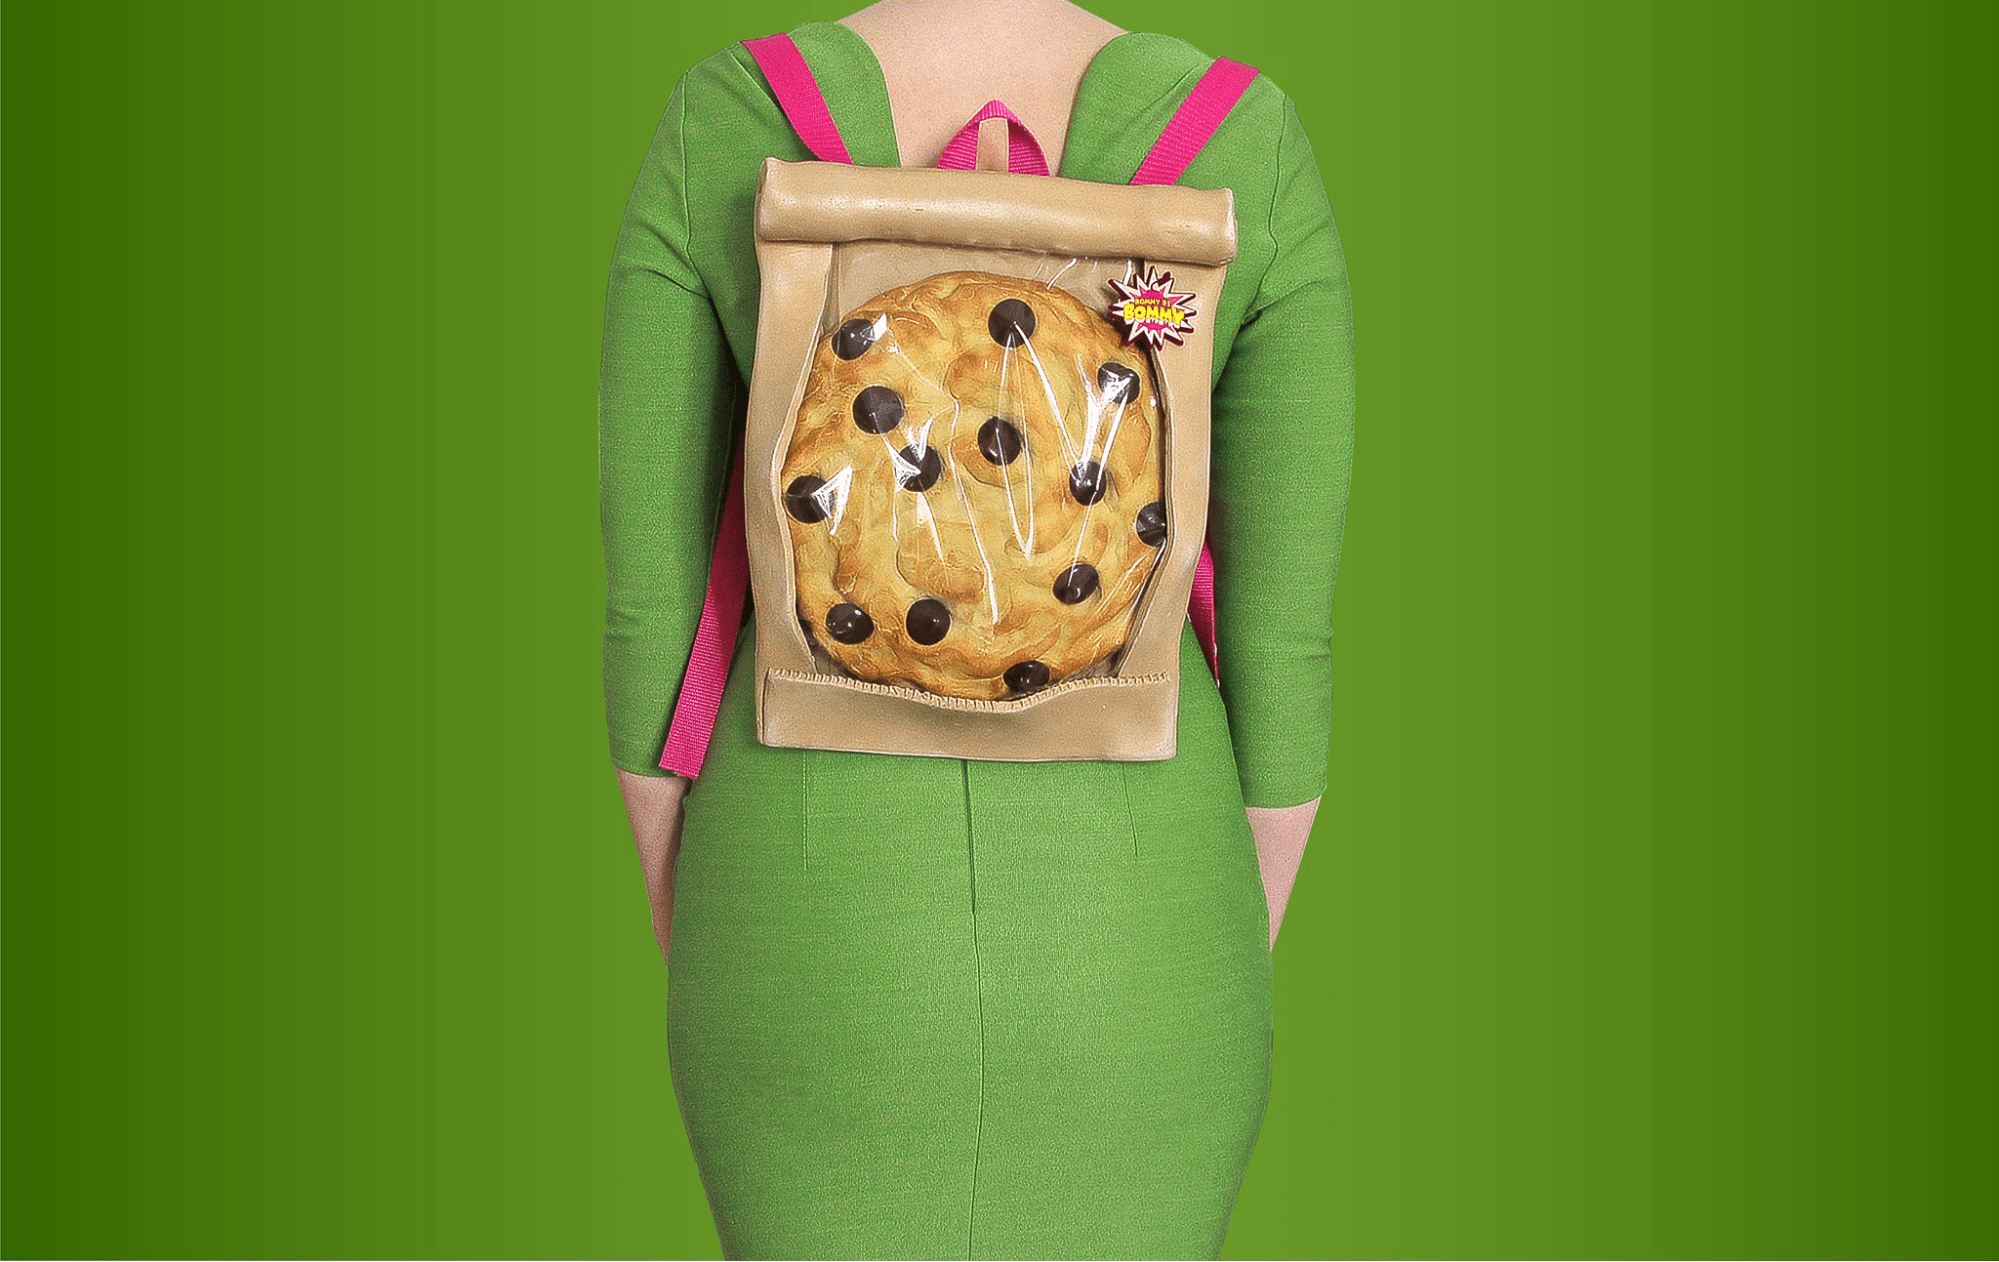 empanada purse - cookie backpack